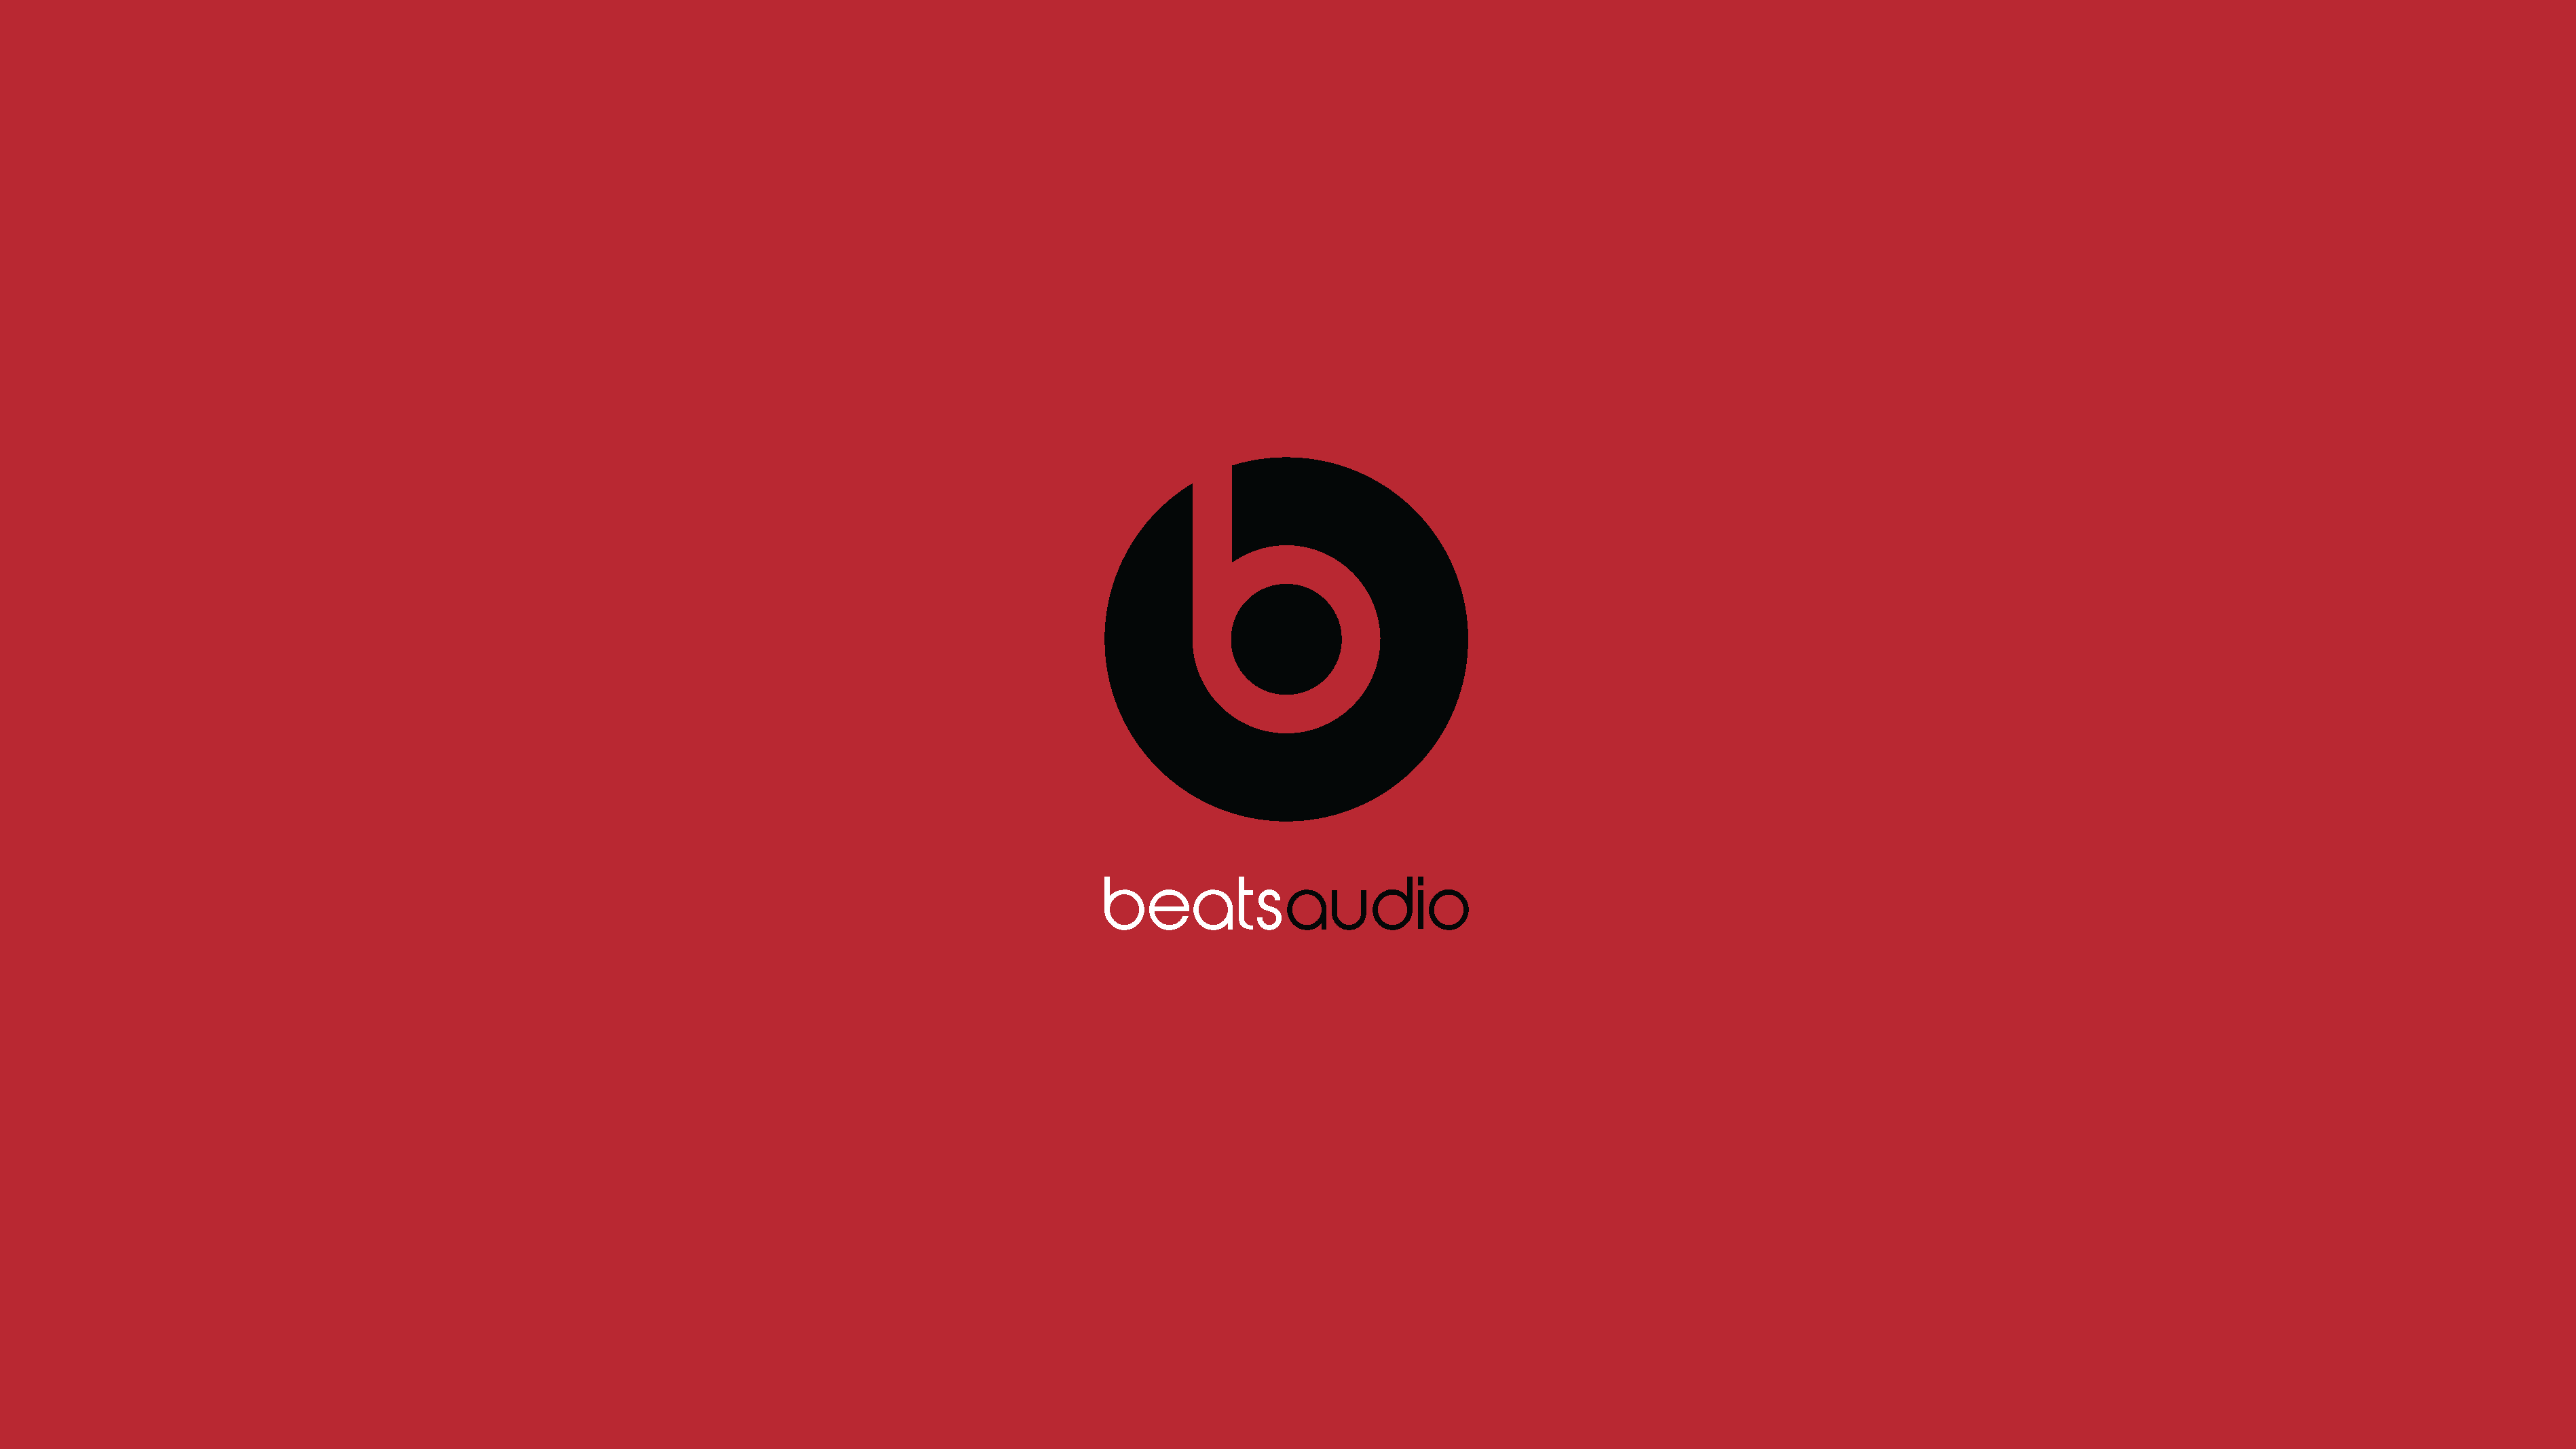 beats audio wallpaper 5288